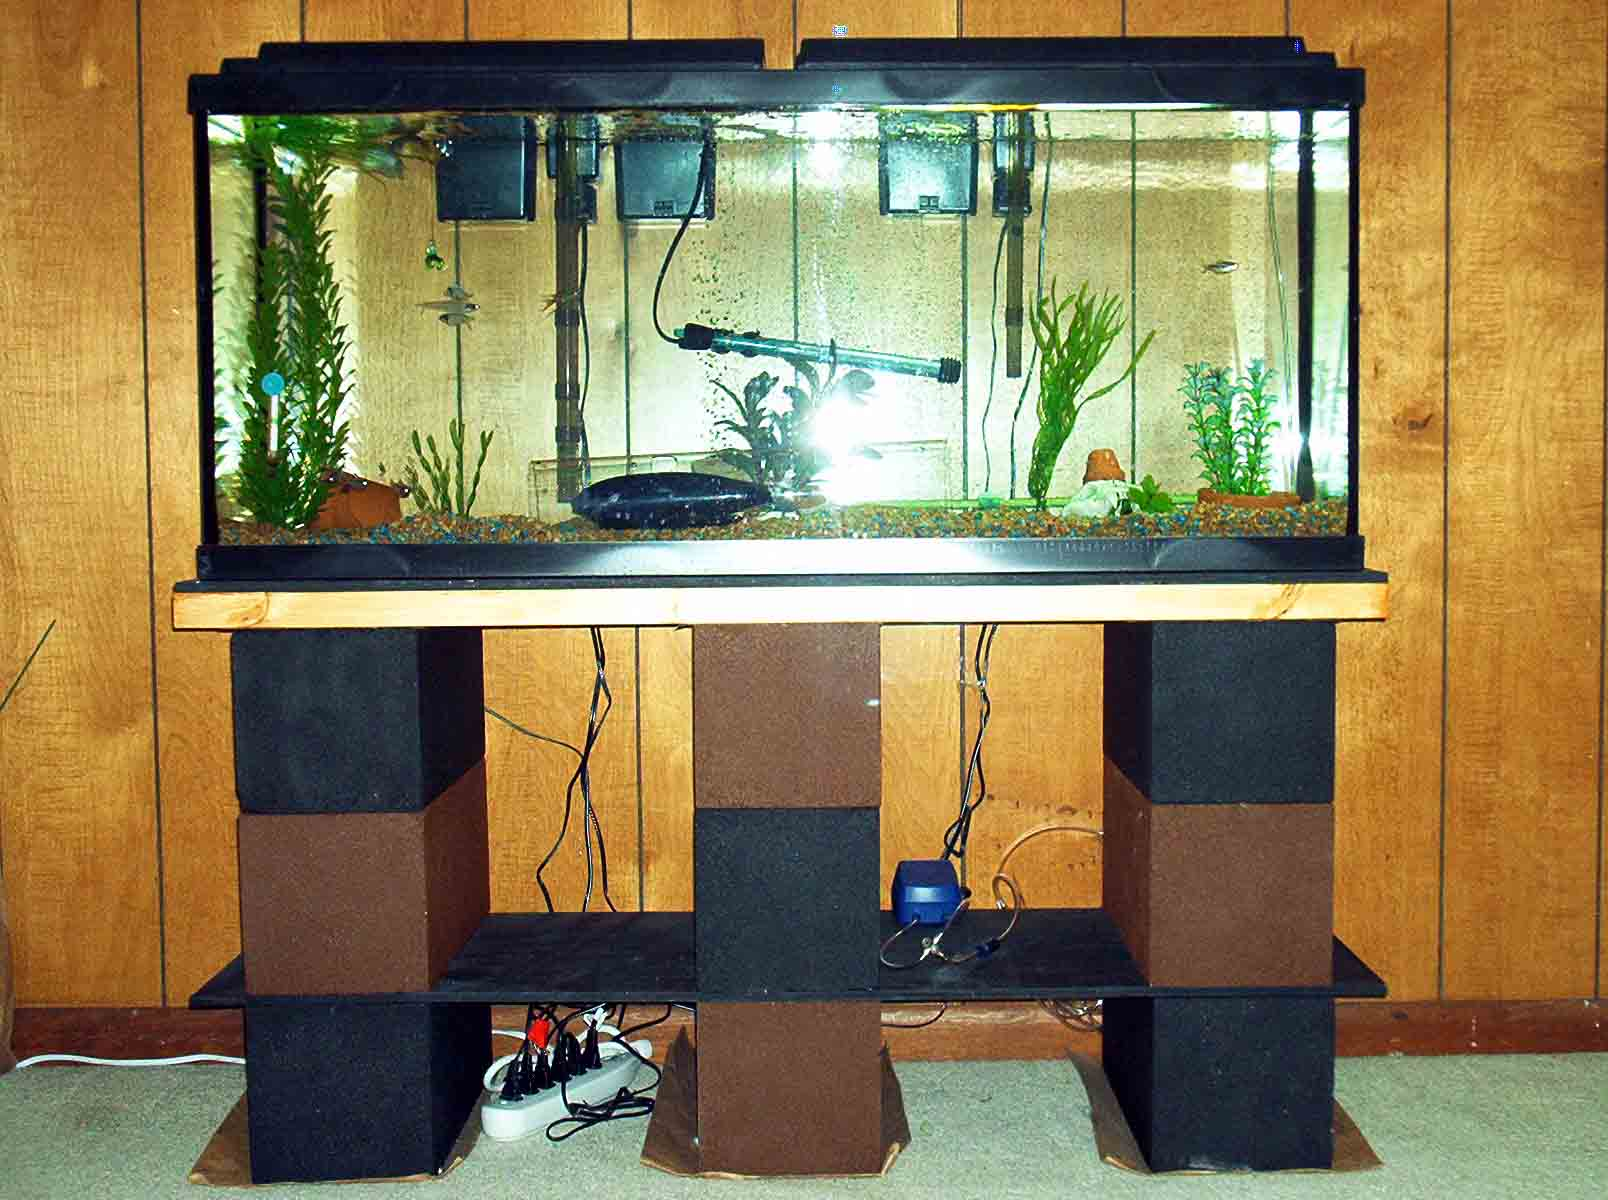 55 Gallon Fish Tank Stand Design